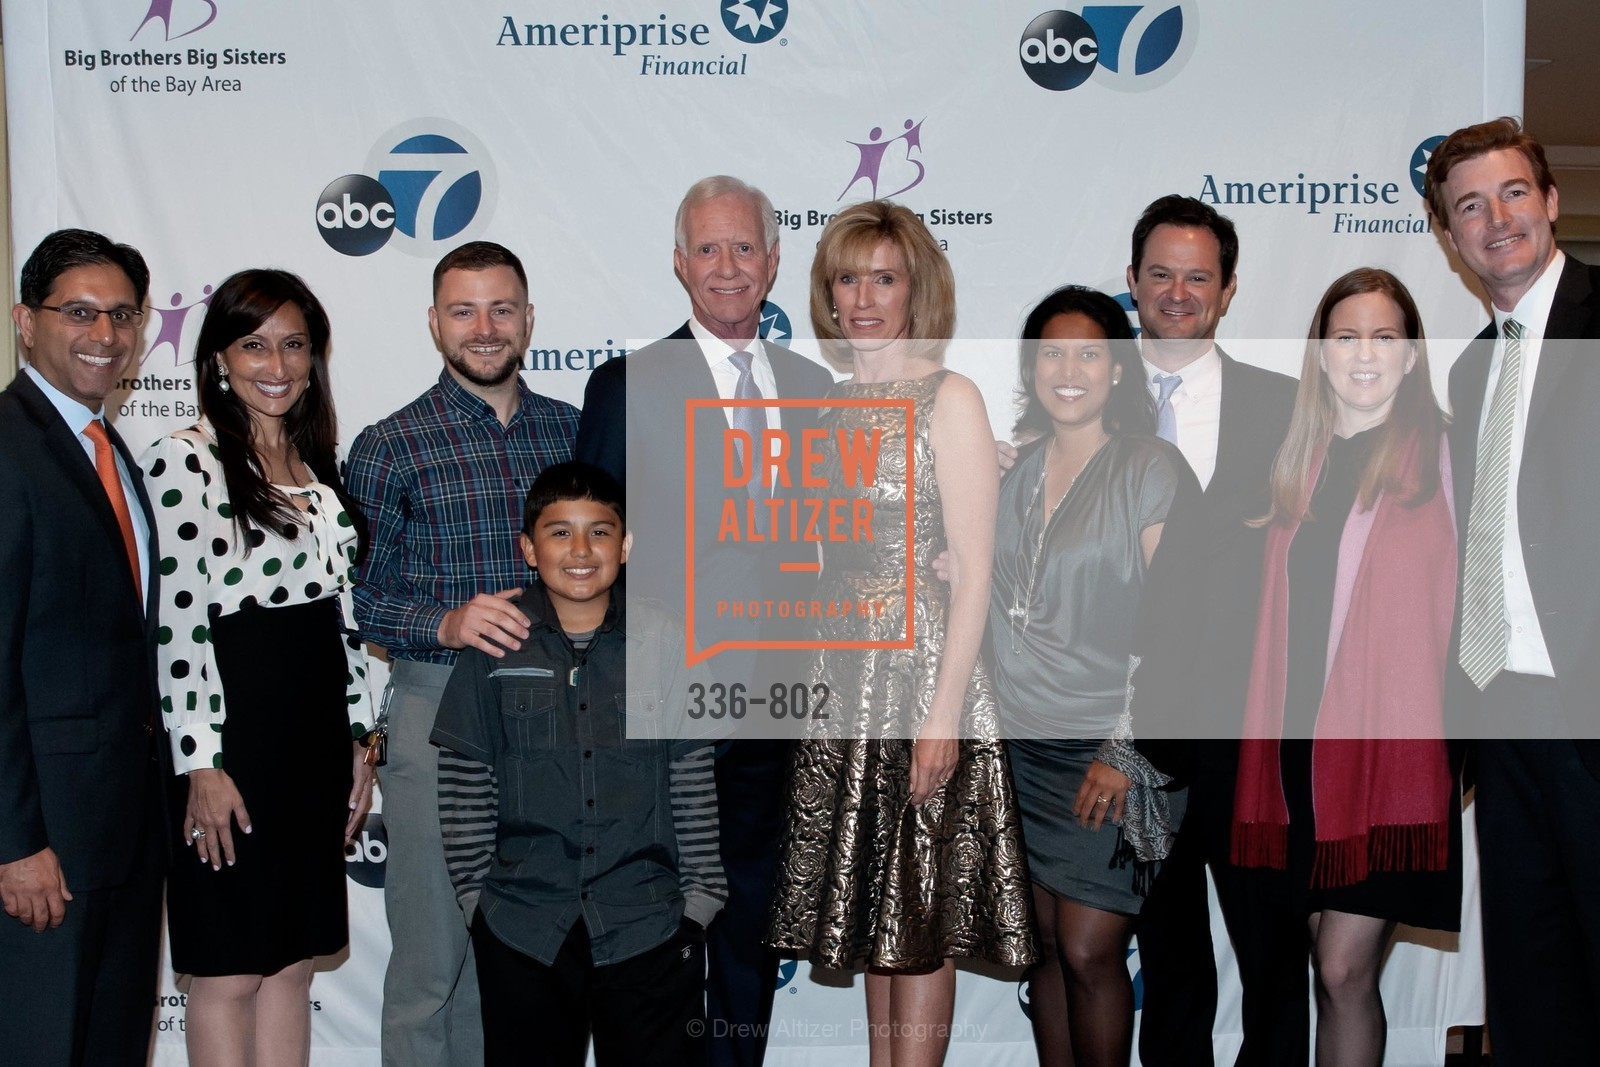 Rajat Duggal, Shefali Razdan Duggal, Sully Sullenberger, Lorrie Sullenberger, MR PORTER Celebrate The San Francisco Issue of The Journal, US, April 23rd, 2015,Drew Altizer, Drew Altizer Photography, full-service agency, private events, San Francisco photographer, photographer california